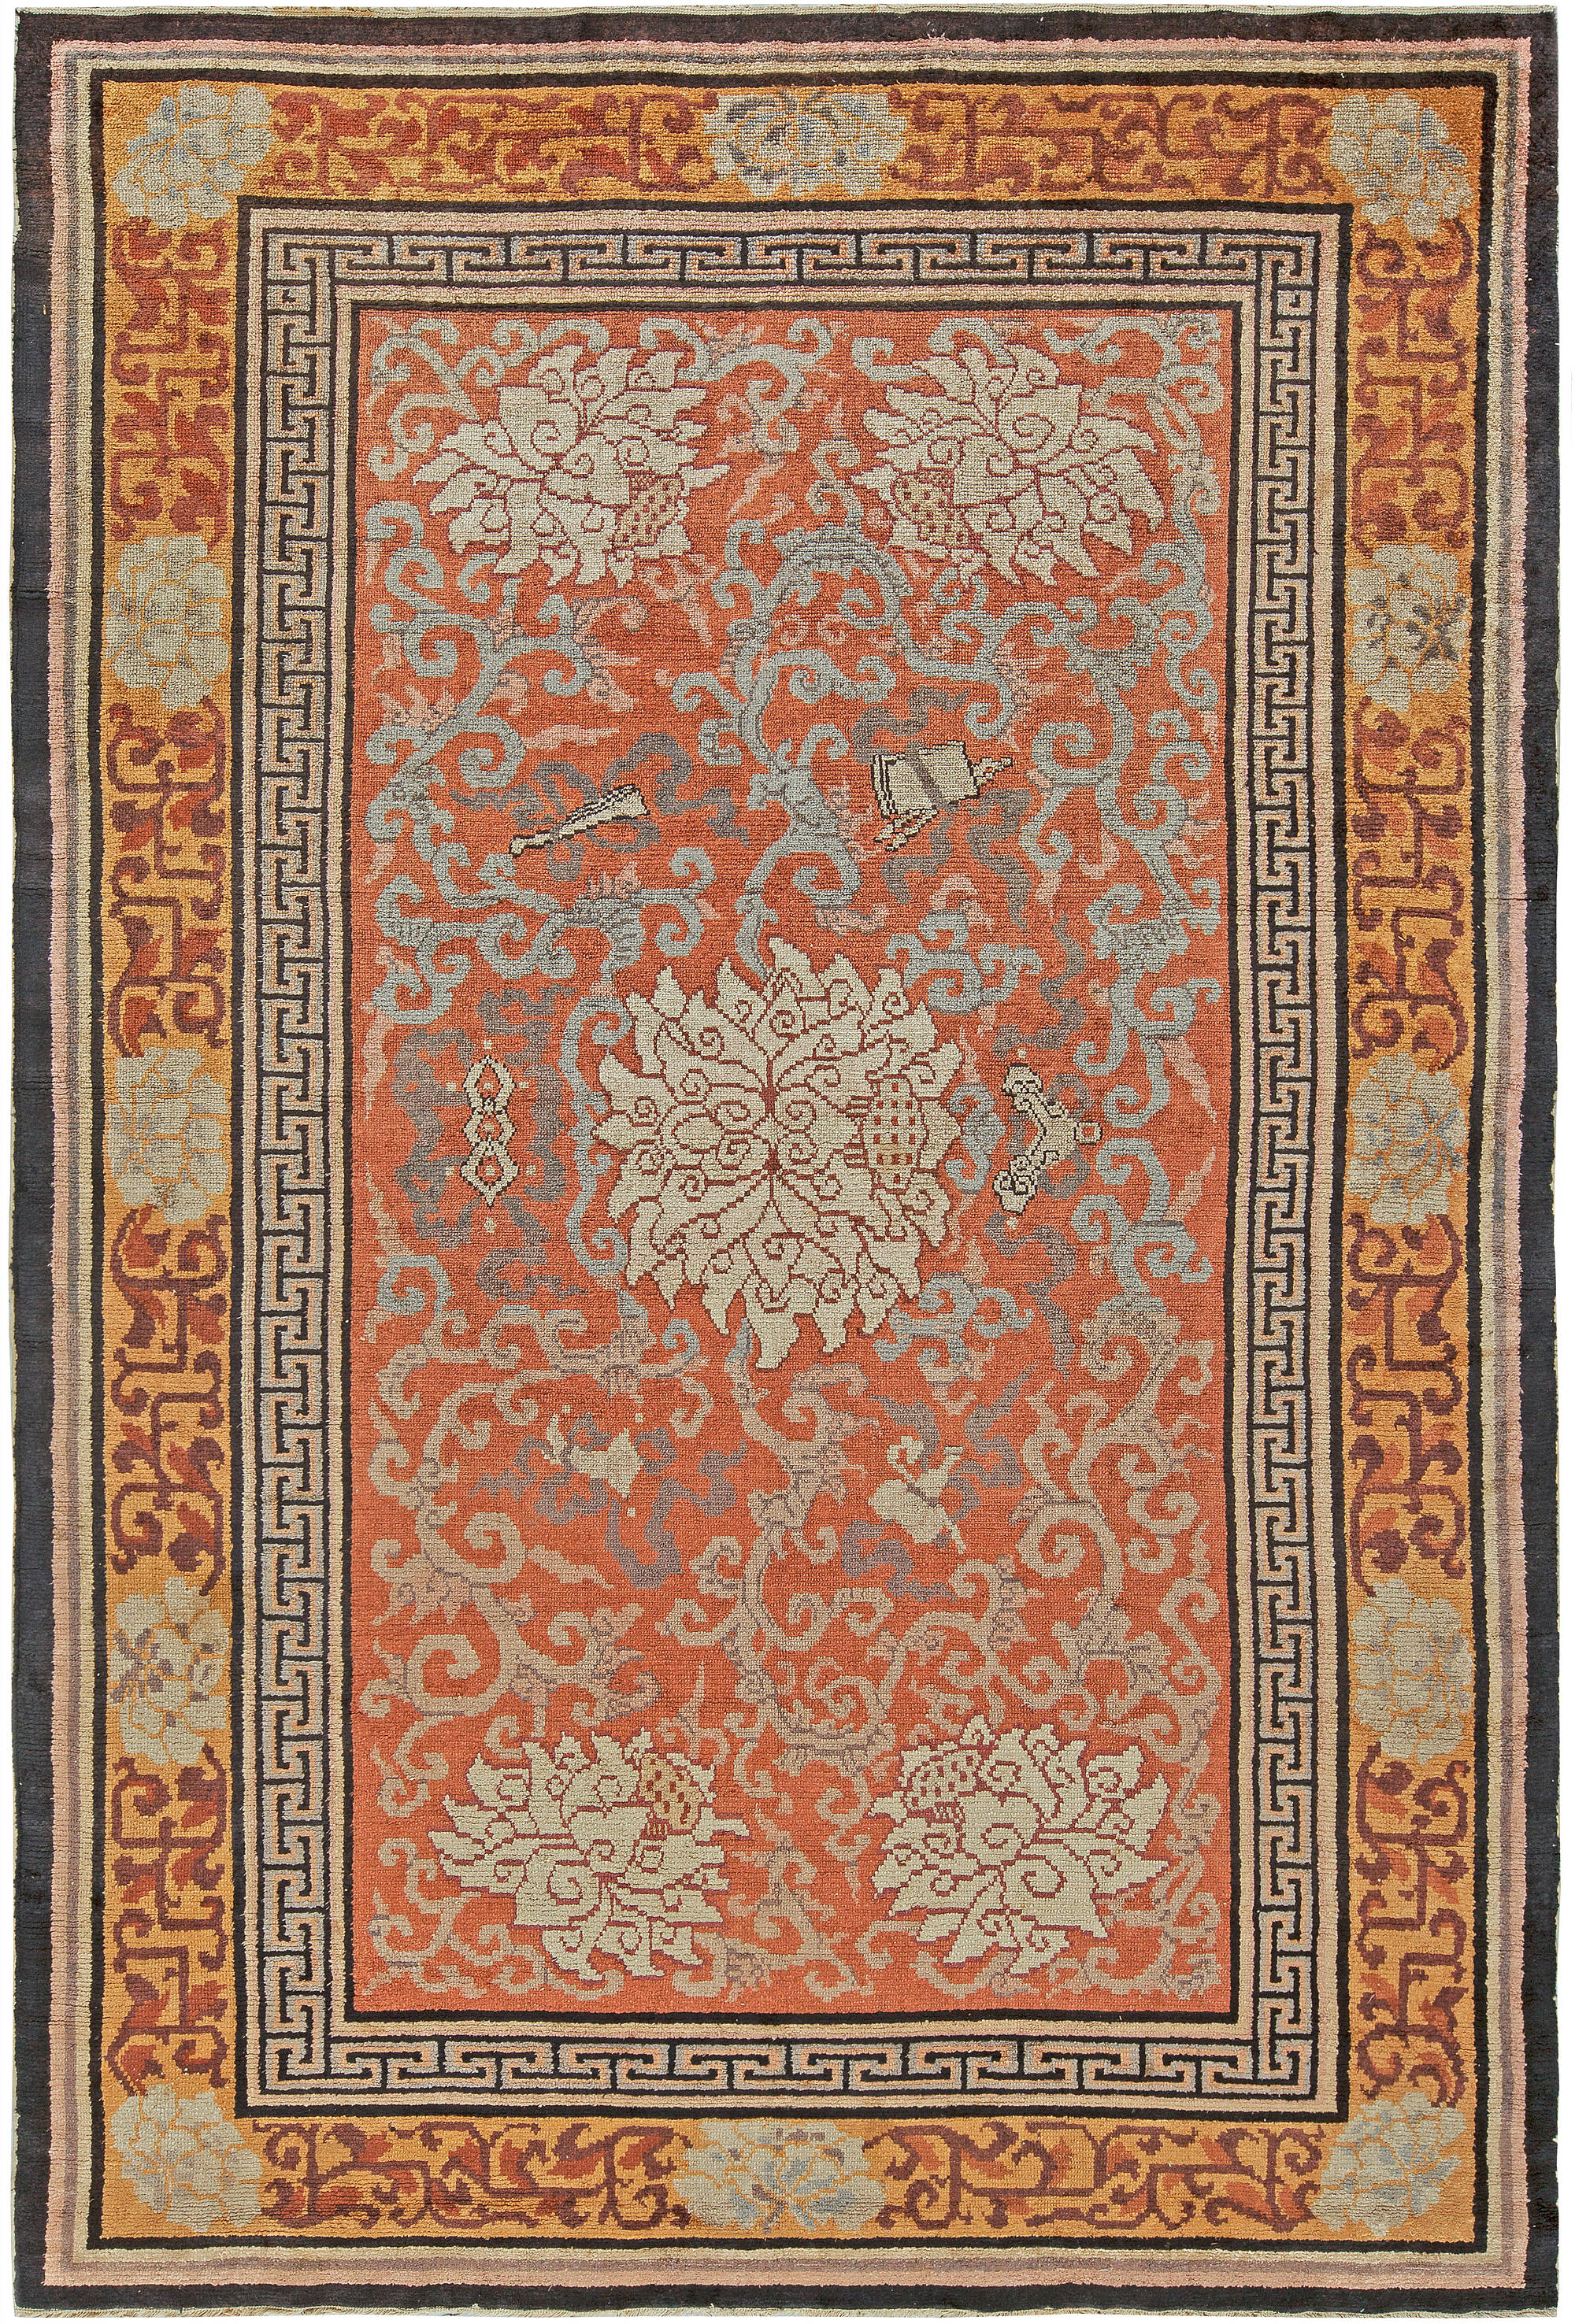 chinese rugs vintage silk chinese rug bb5626. arrow down  47161db02bae4ef92bdede423862e8f0c2b91f81311572b5a8bb90eef3001a34 JDAQXNF